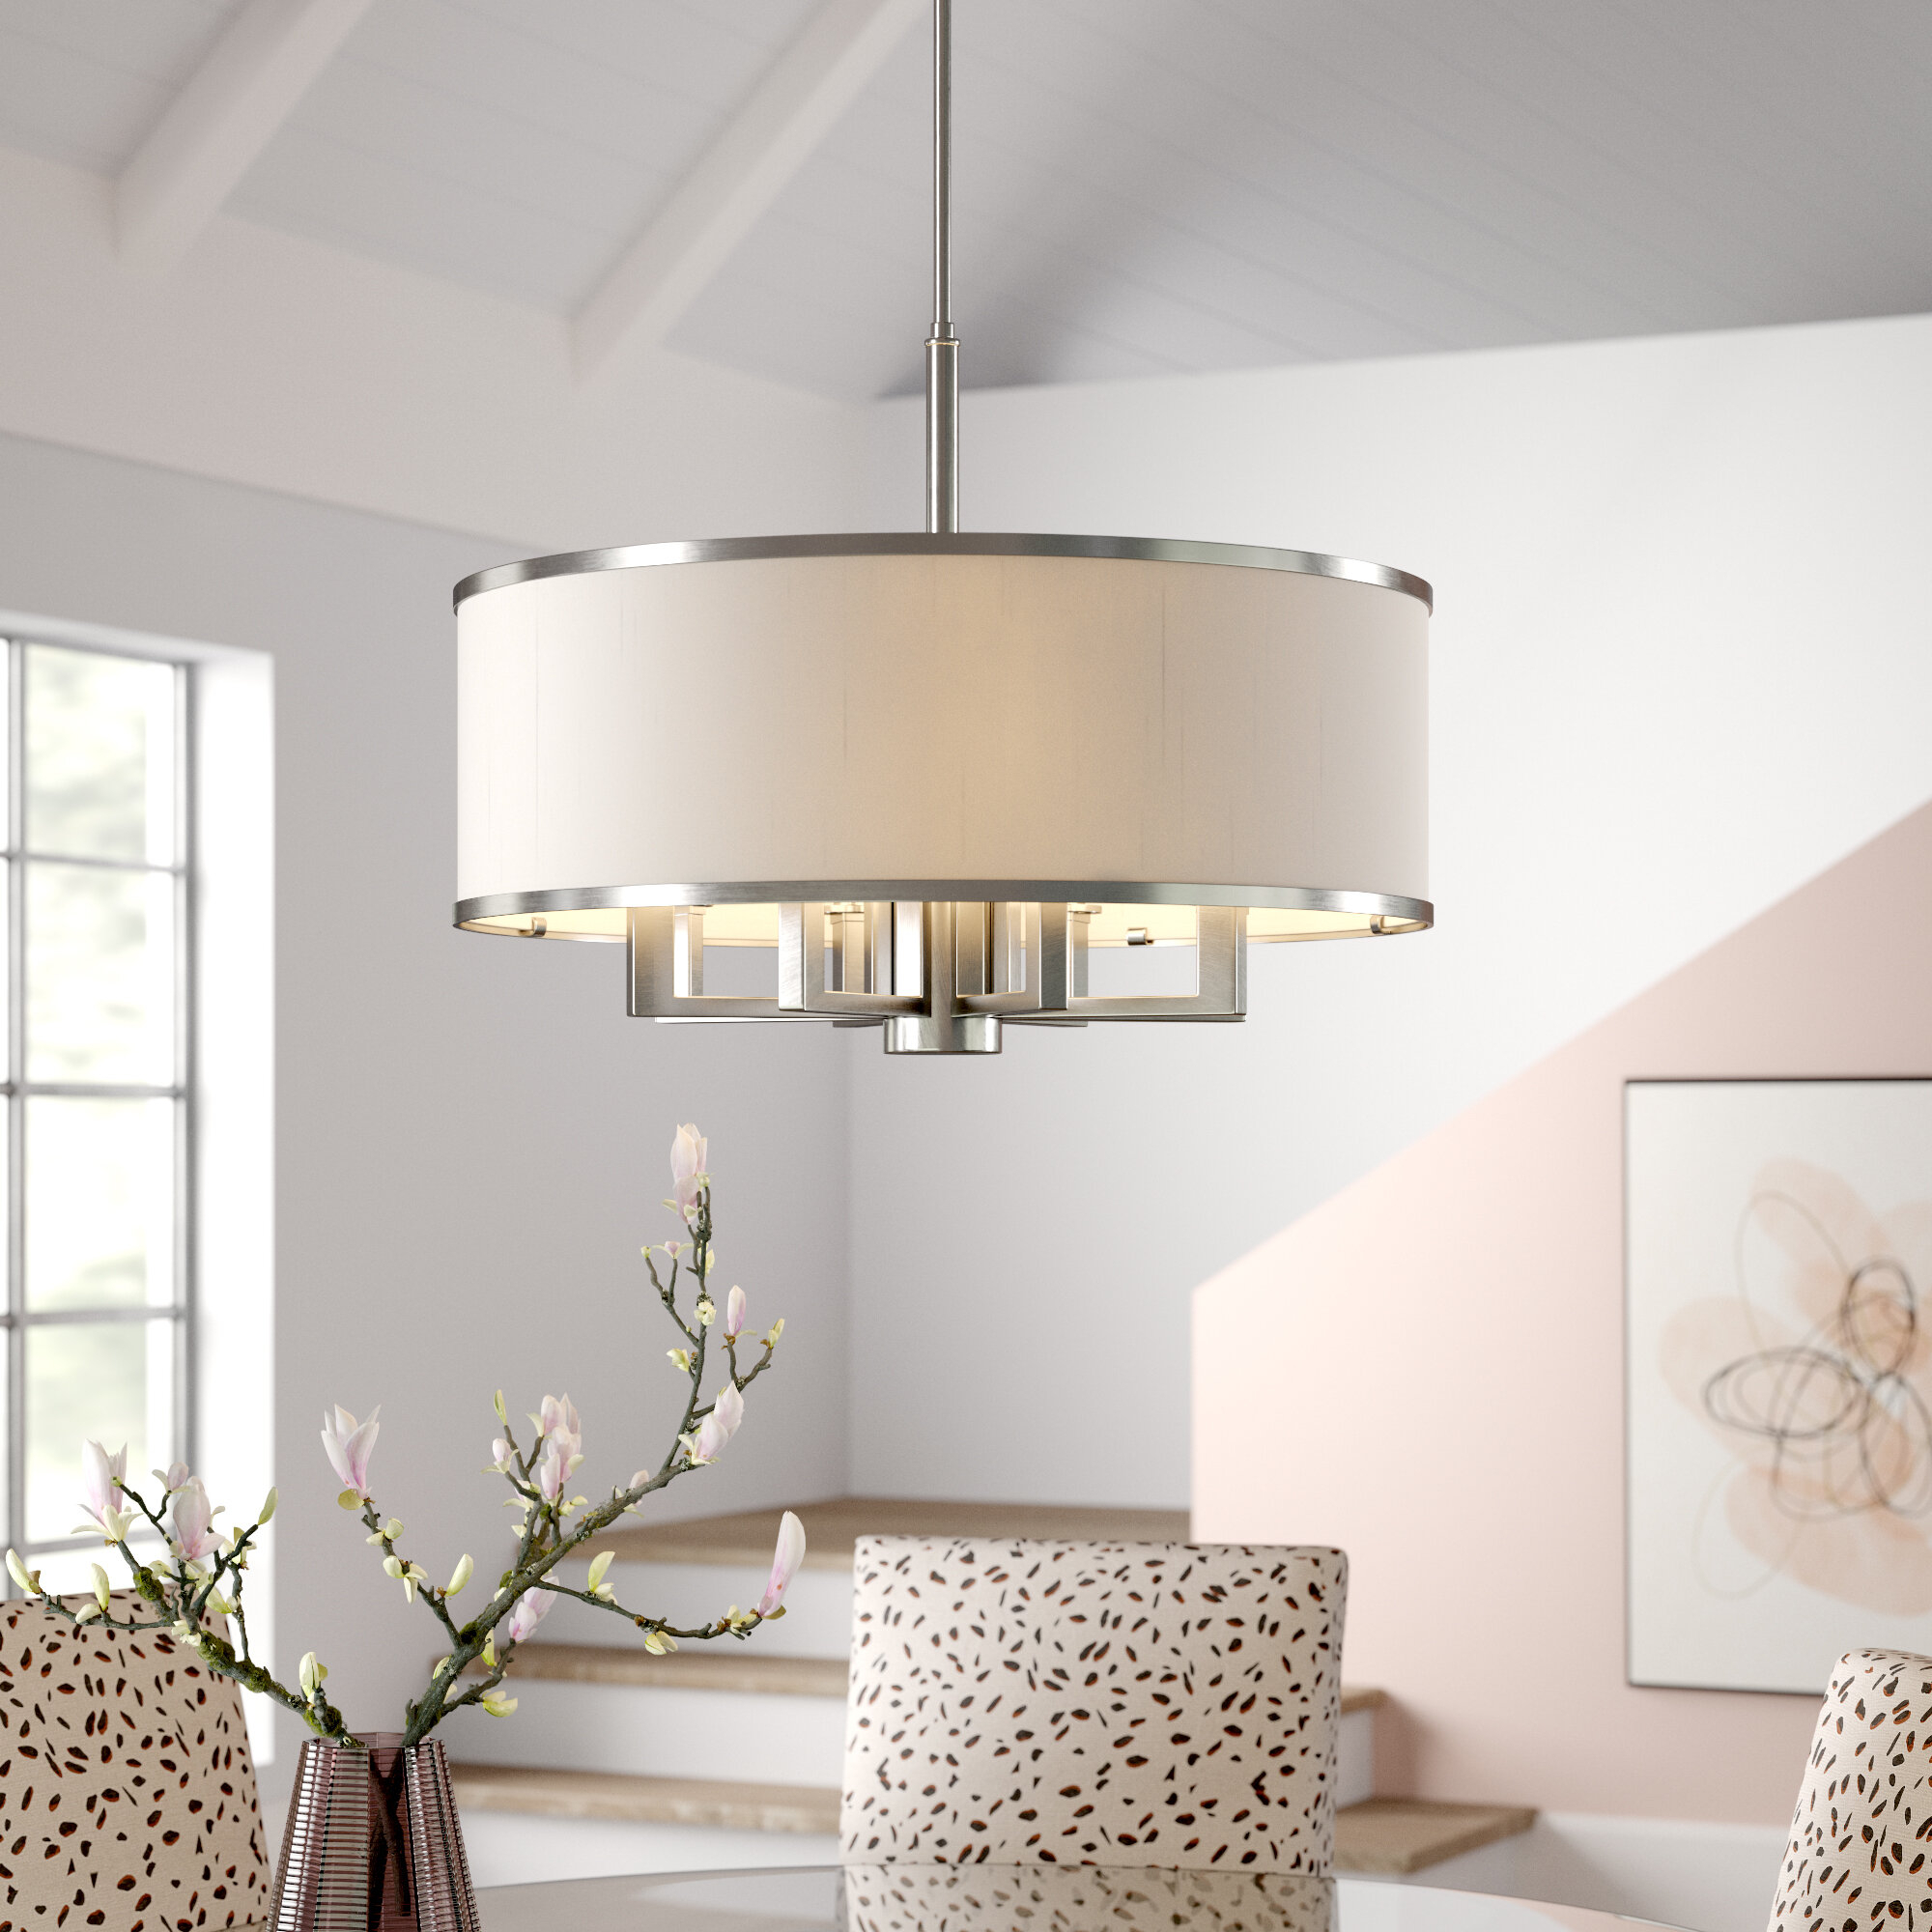 Breithaup 7 Light Drum Chandelier With Harlan 5 Light Drum Chandeliers (View 18 of 30)